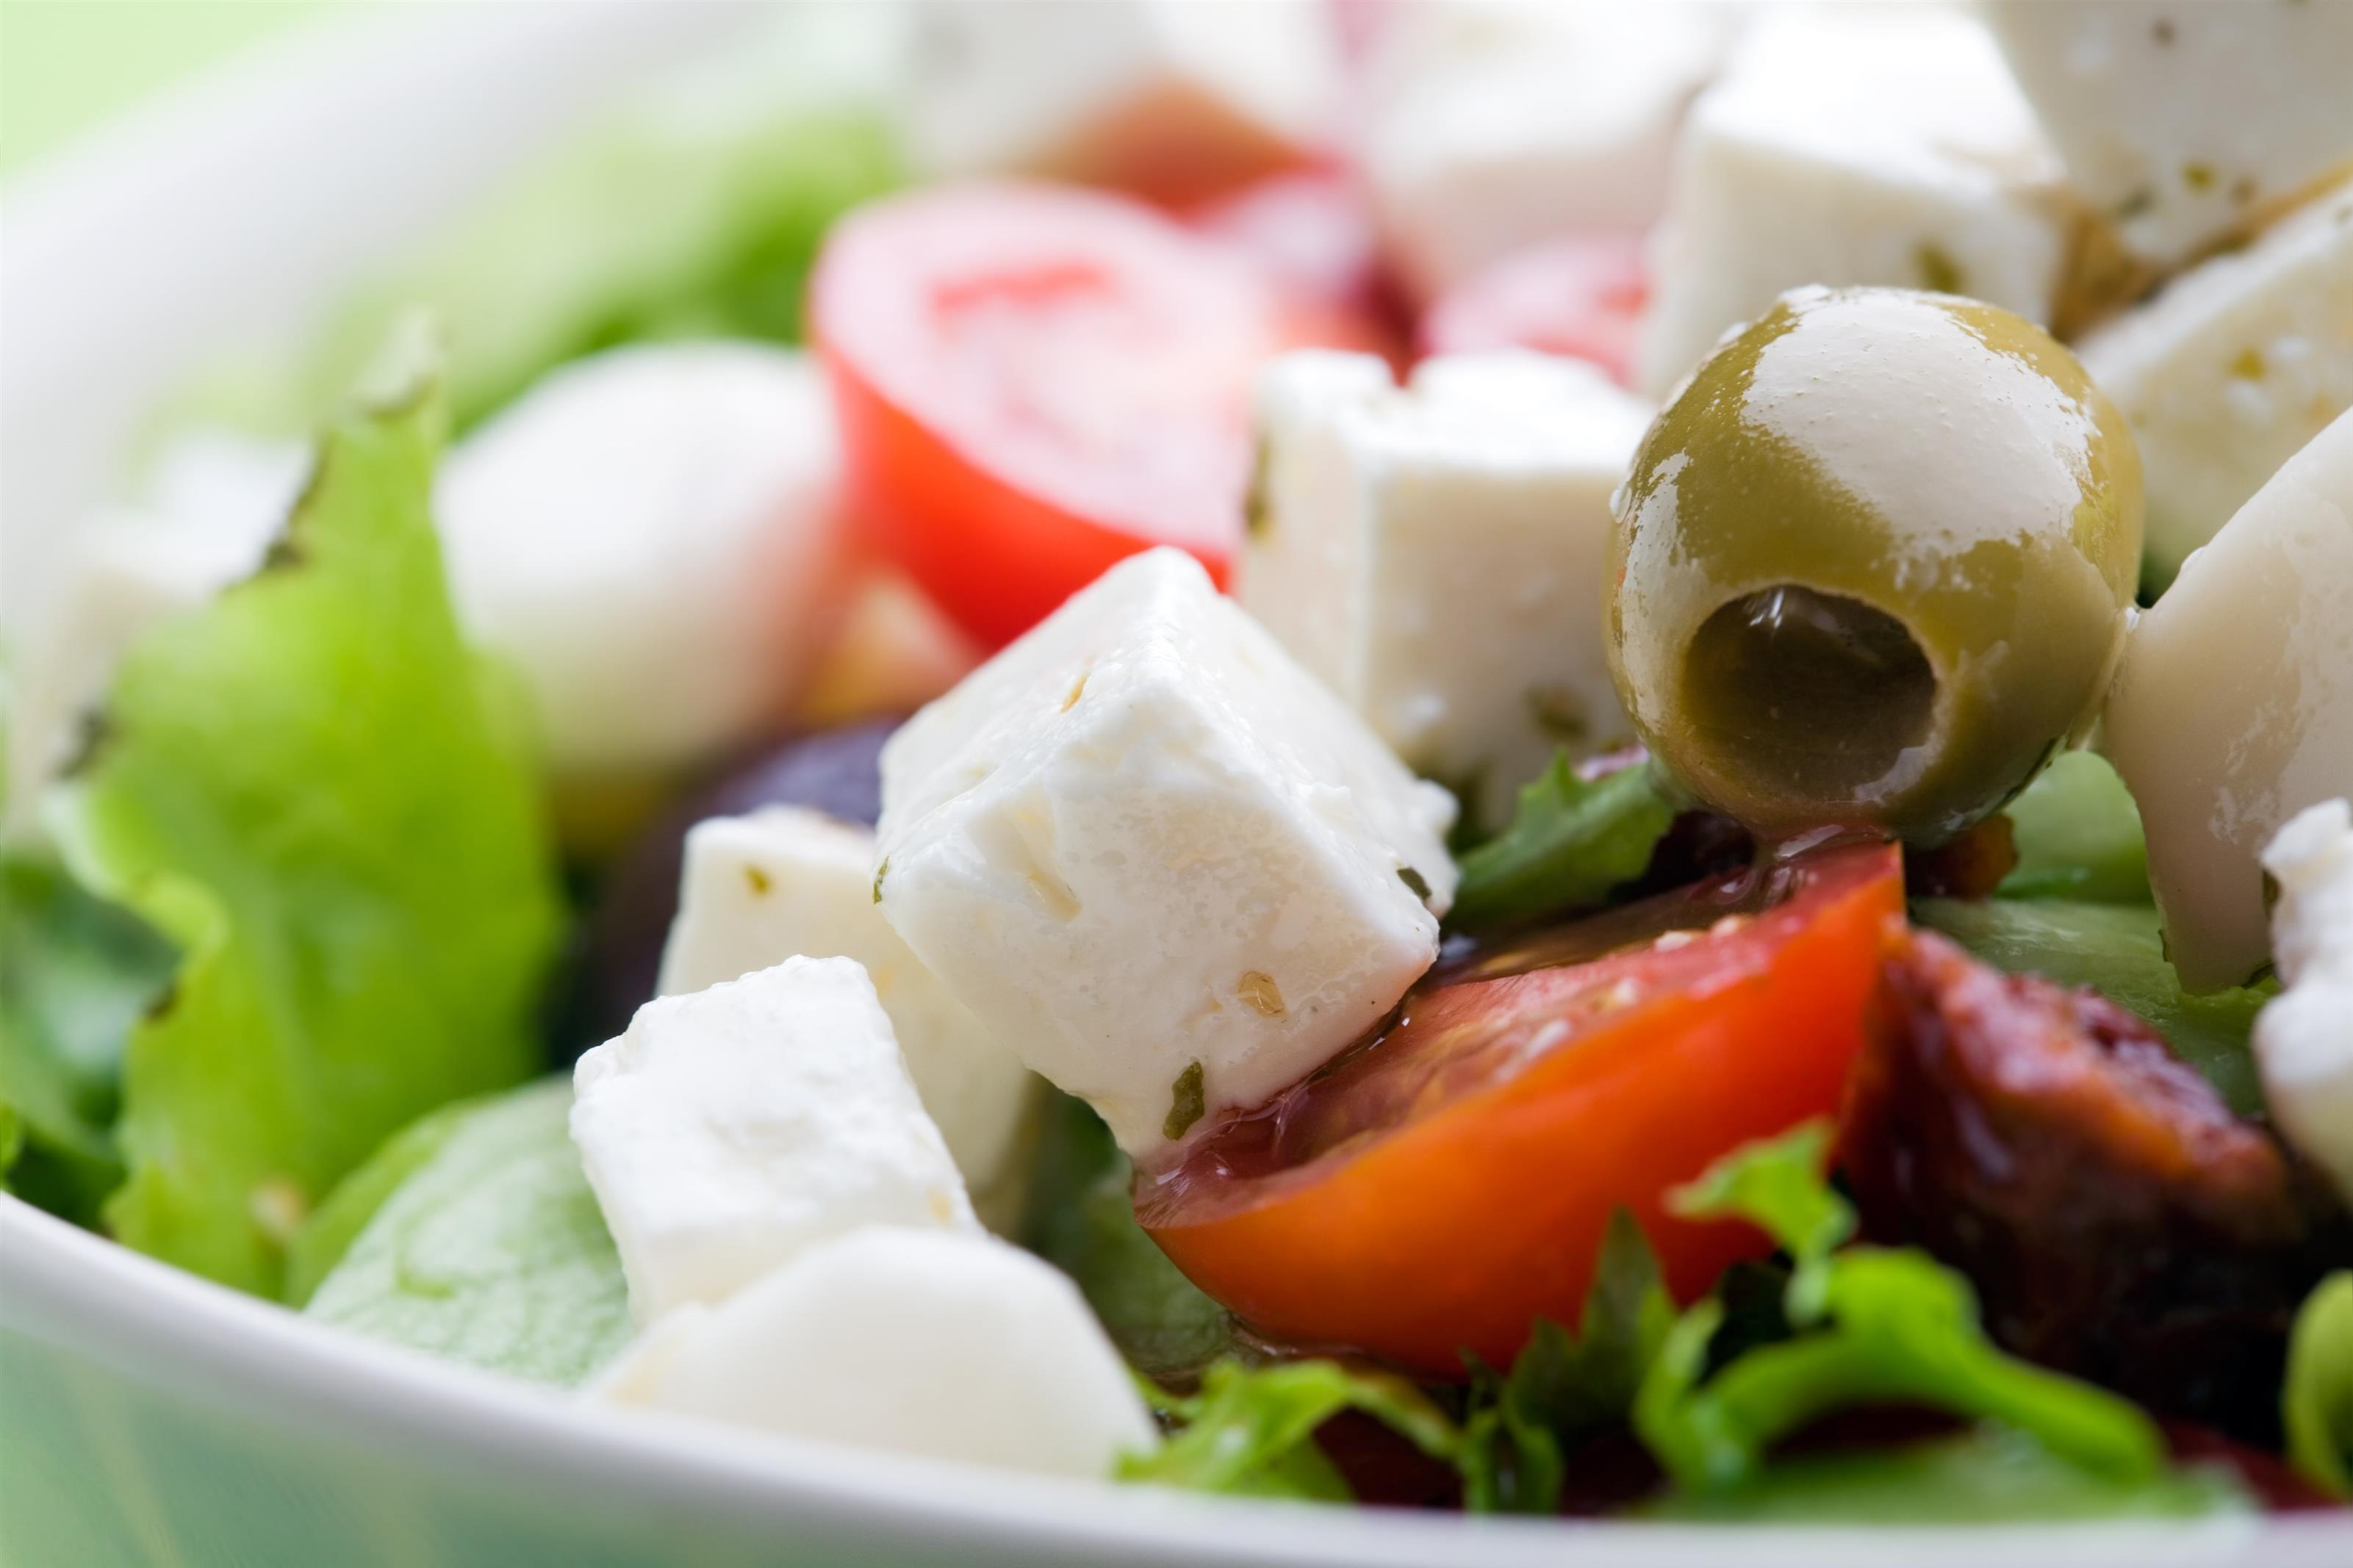 fresh salad with feta cheese, tomatoes, olives and vinaigrette dressing